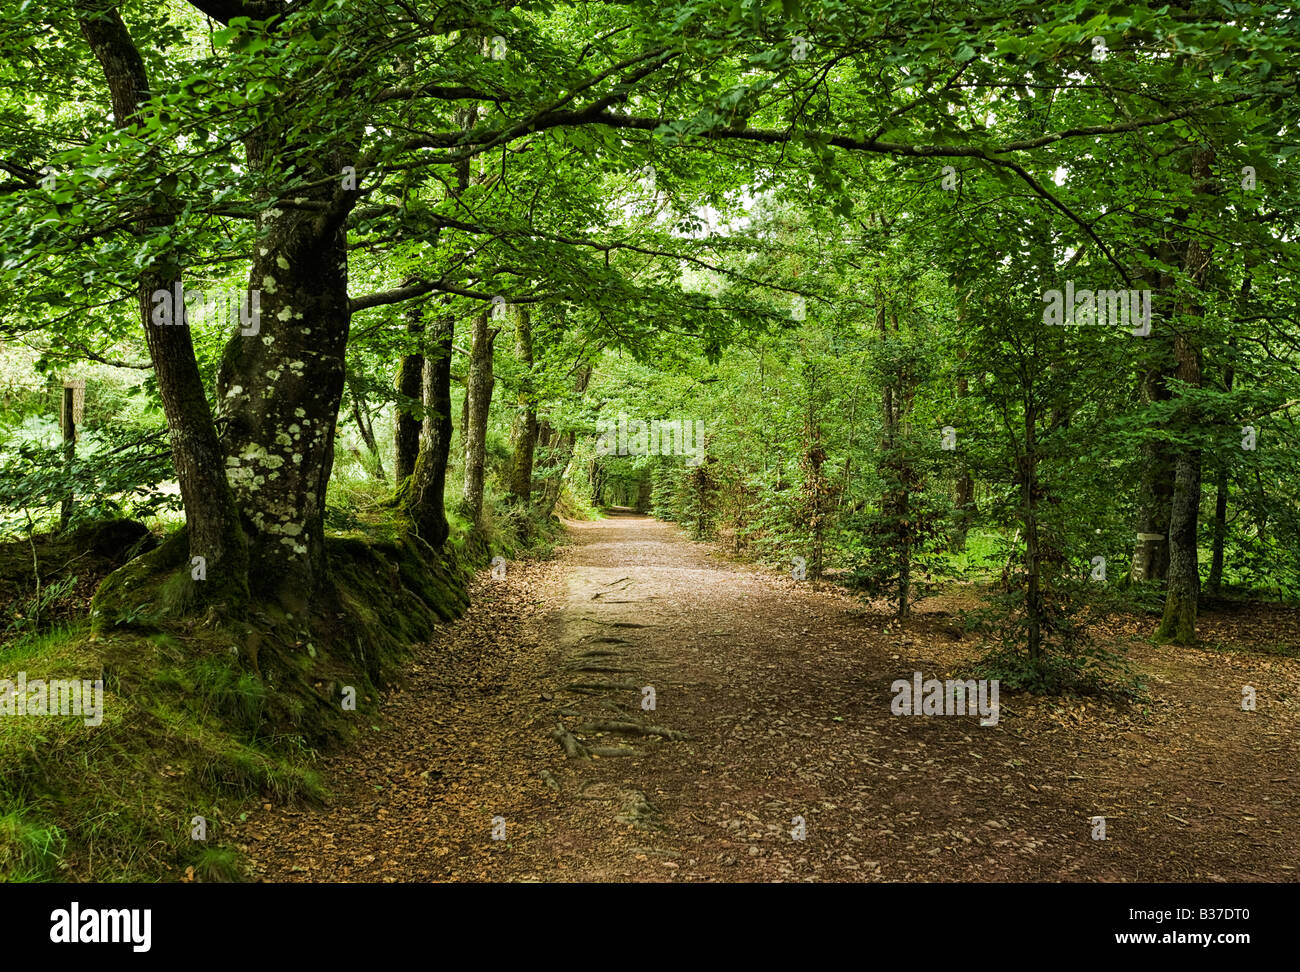 Woodland path through the enchanted forest at Broceliande forest, Ille et Vilaine, Brittany, France, Europe - Stock Image